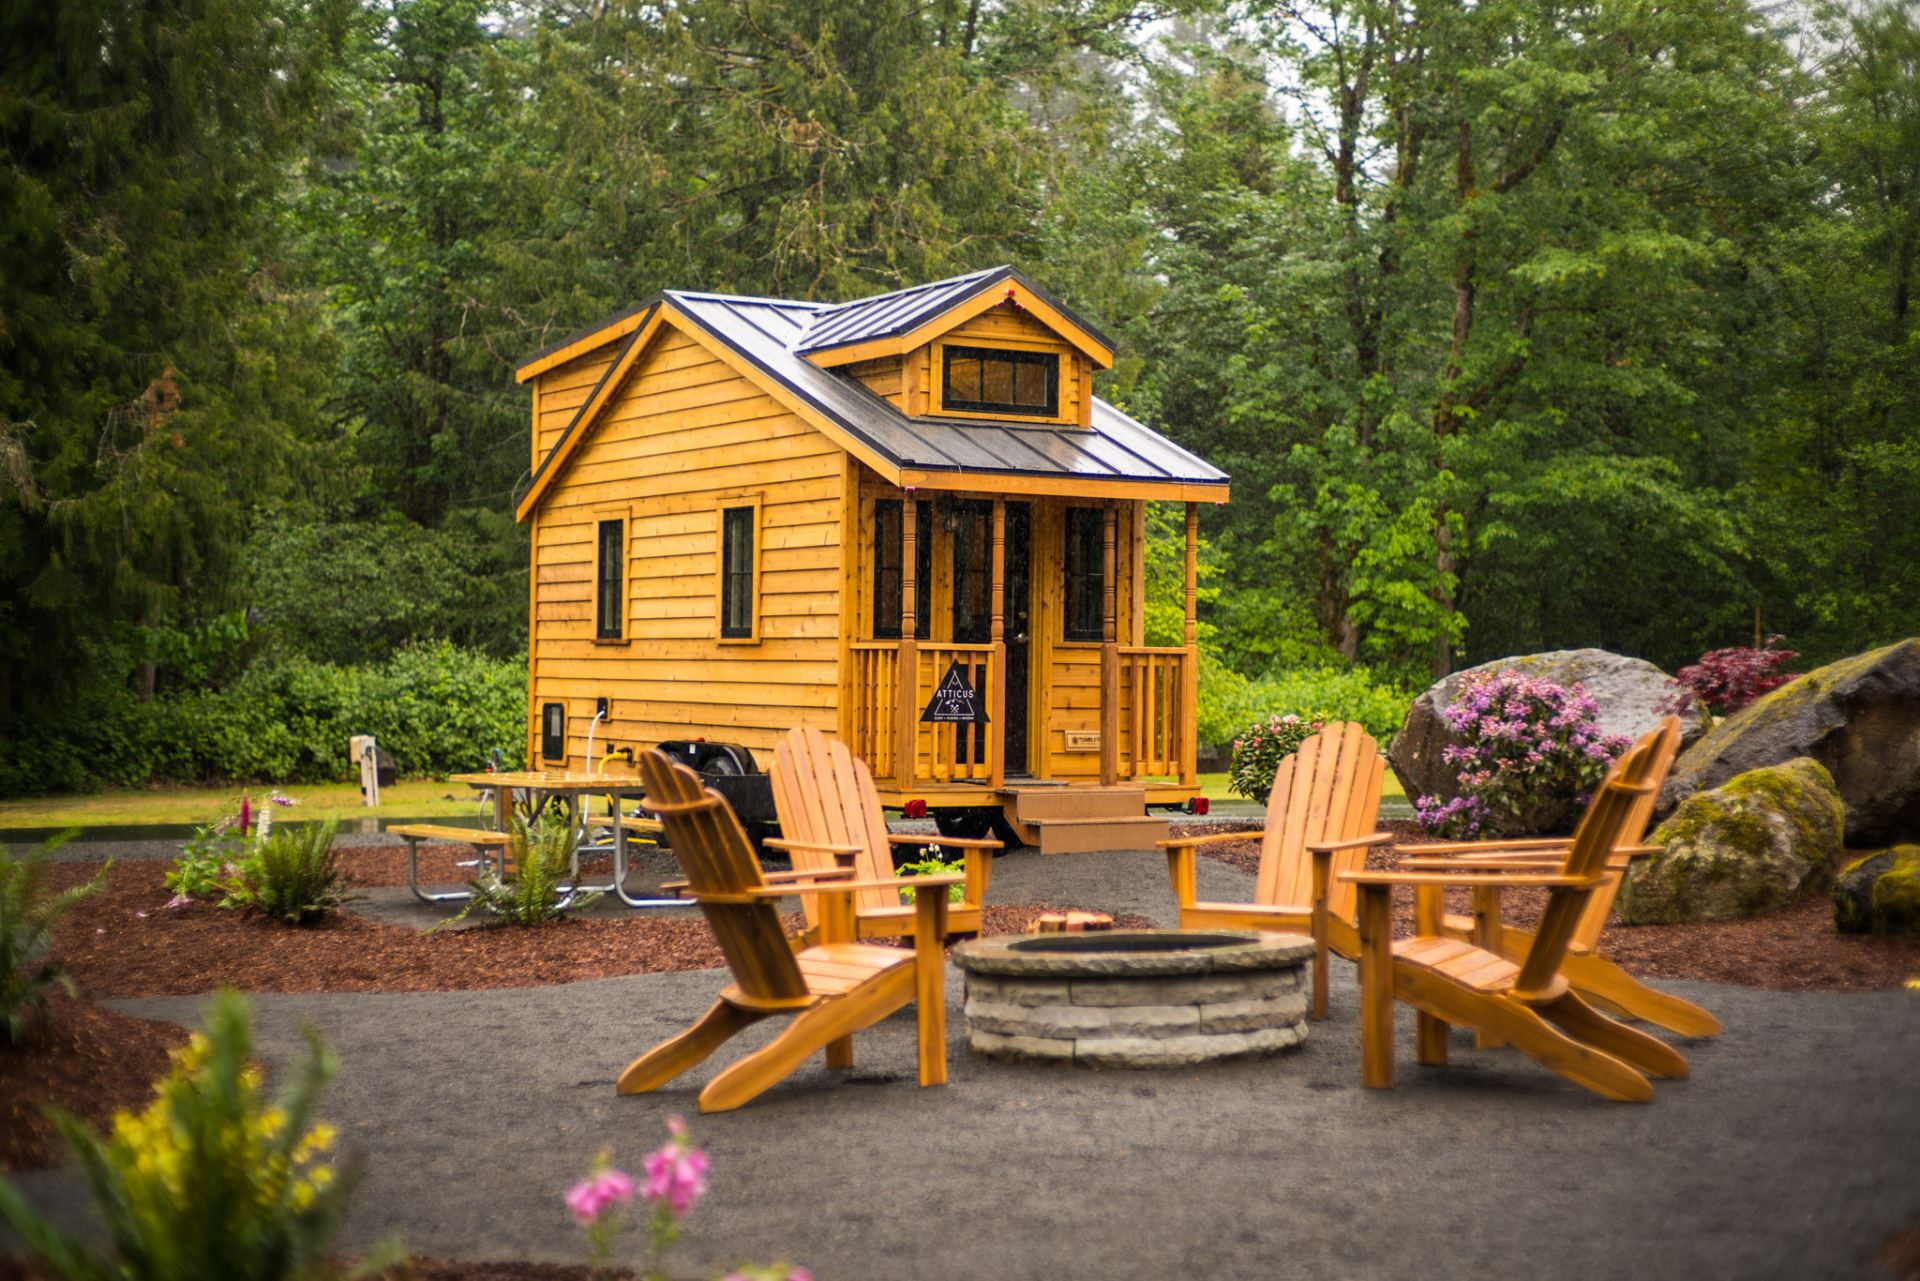 house frame ntnlparksdepot tiny pinterest mount cabin hood design images cabins oregon on cottages in mt getaway a best